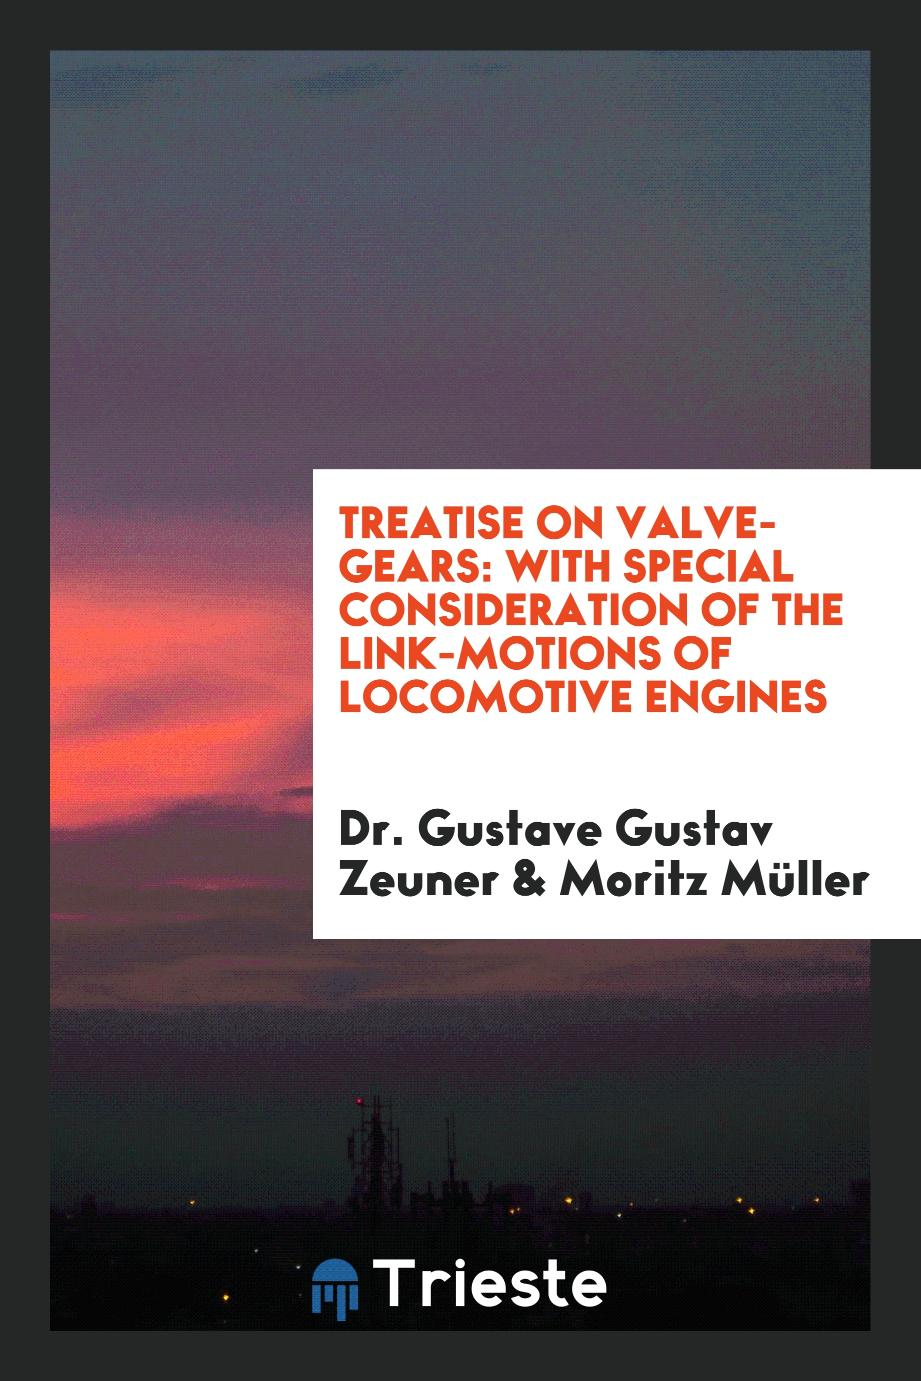 Treatise on Valve-Gears: With Special Consideration of the Link-Motions of Locomotive Engines